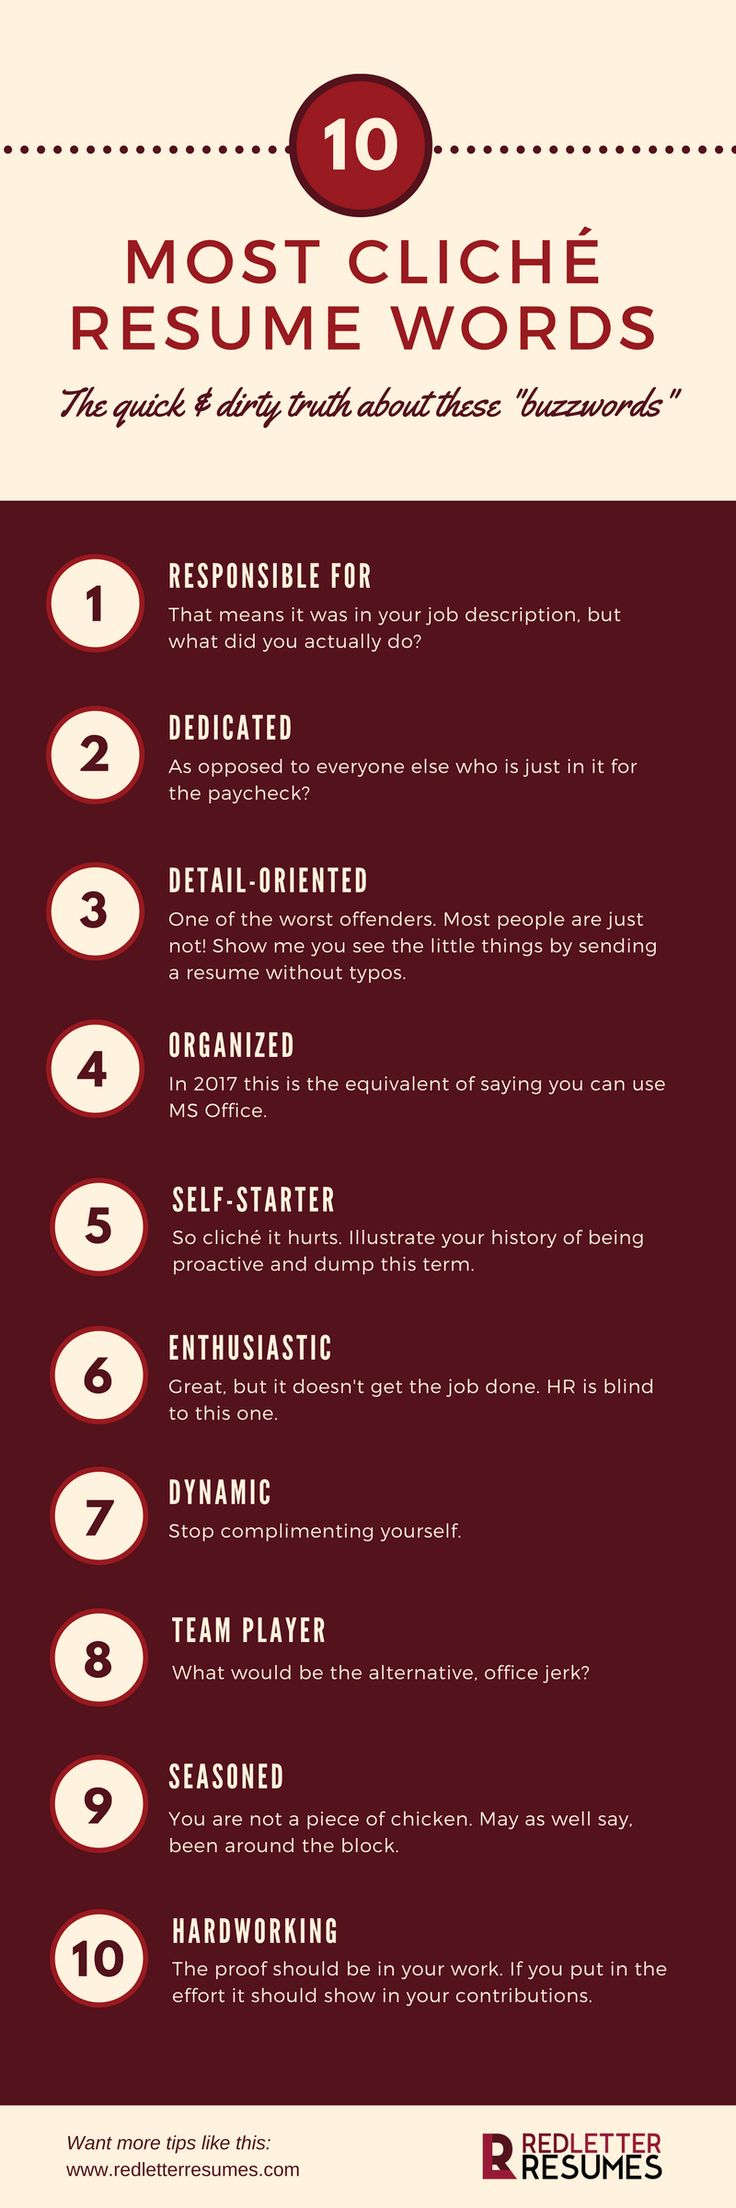 images about red letter resumes blog if your resume includes just a handful of these phrases it probably stinks which means you aren t getting the opportunities you deserve